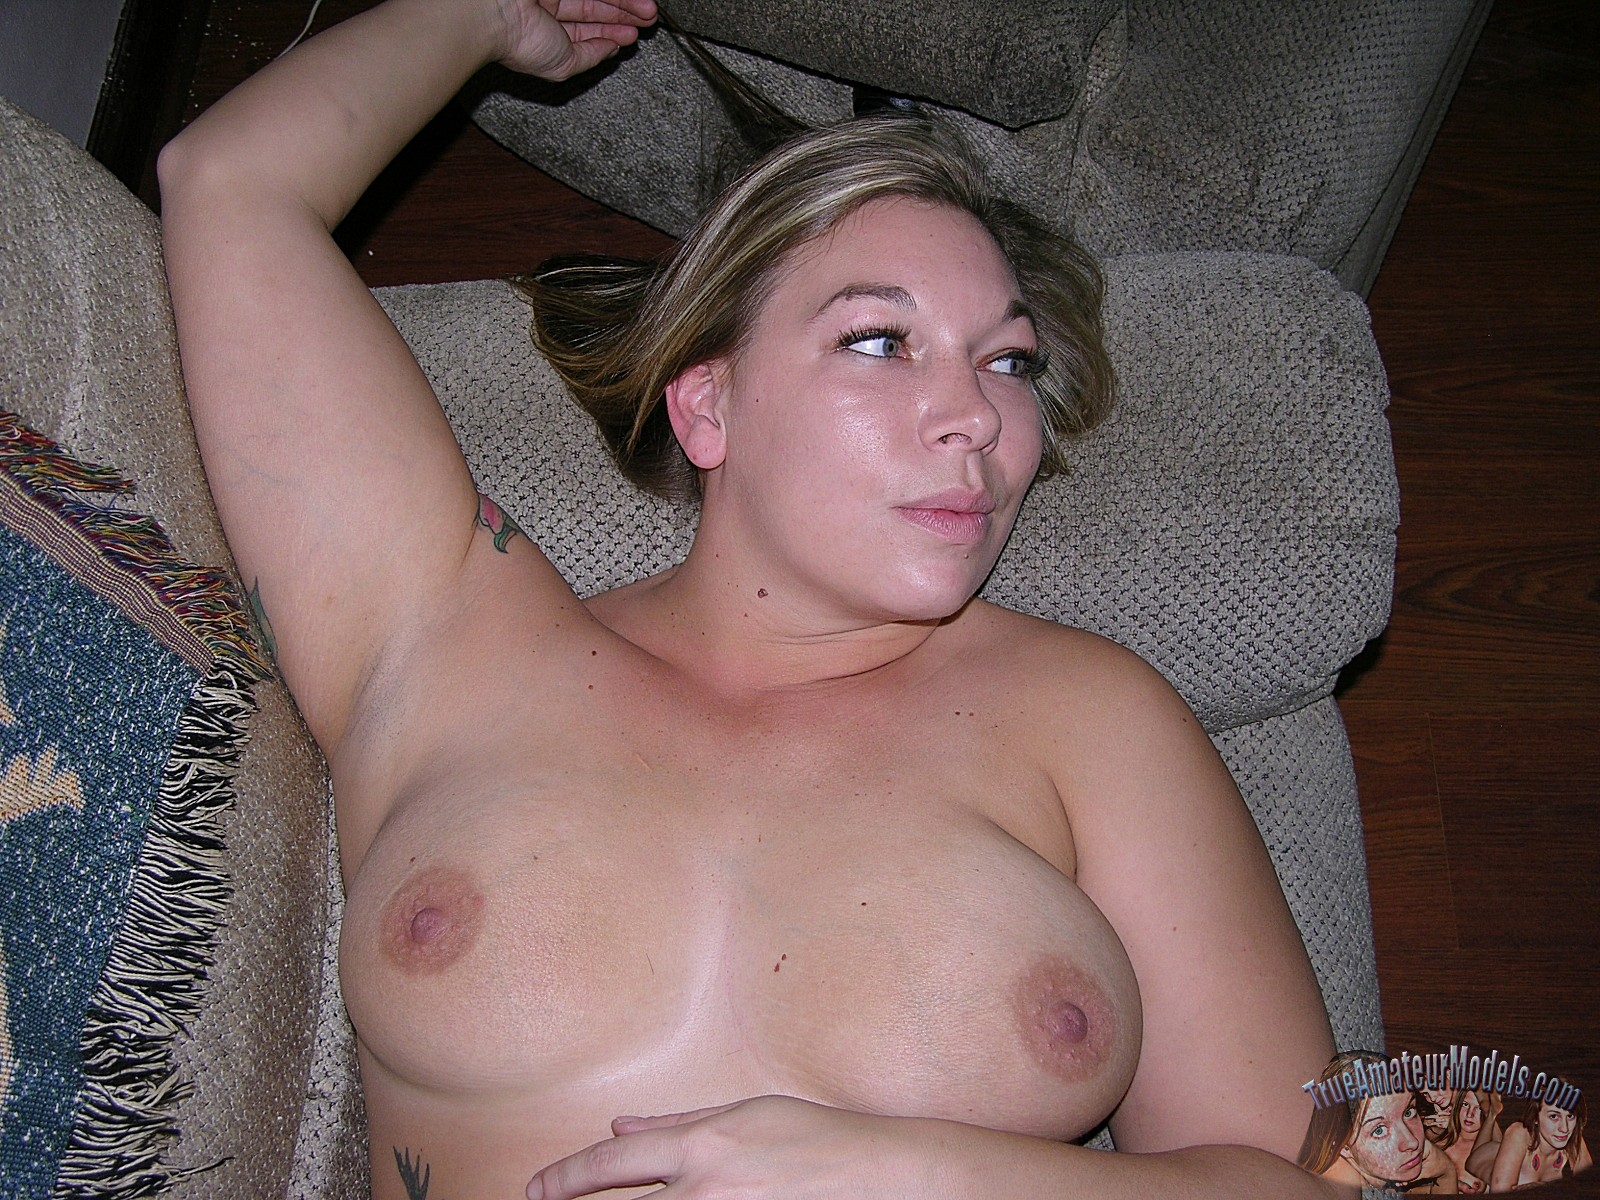 big-tits-valerie-model6